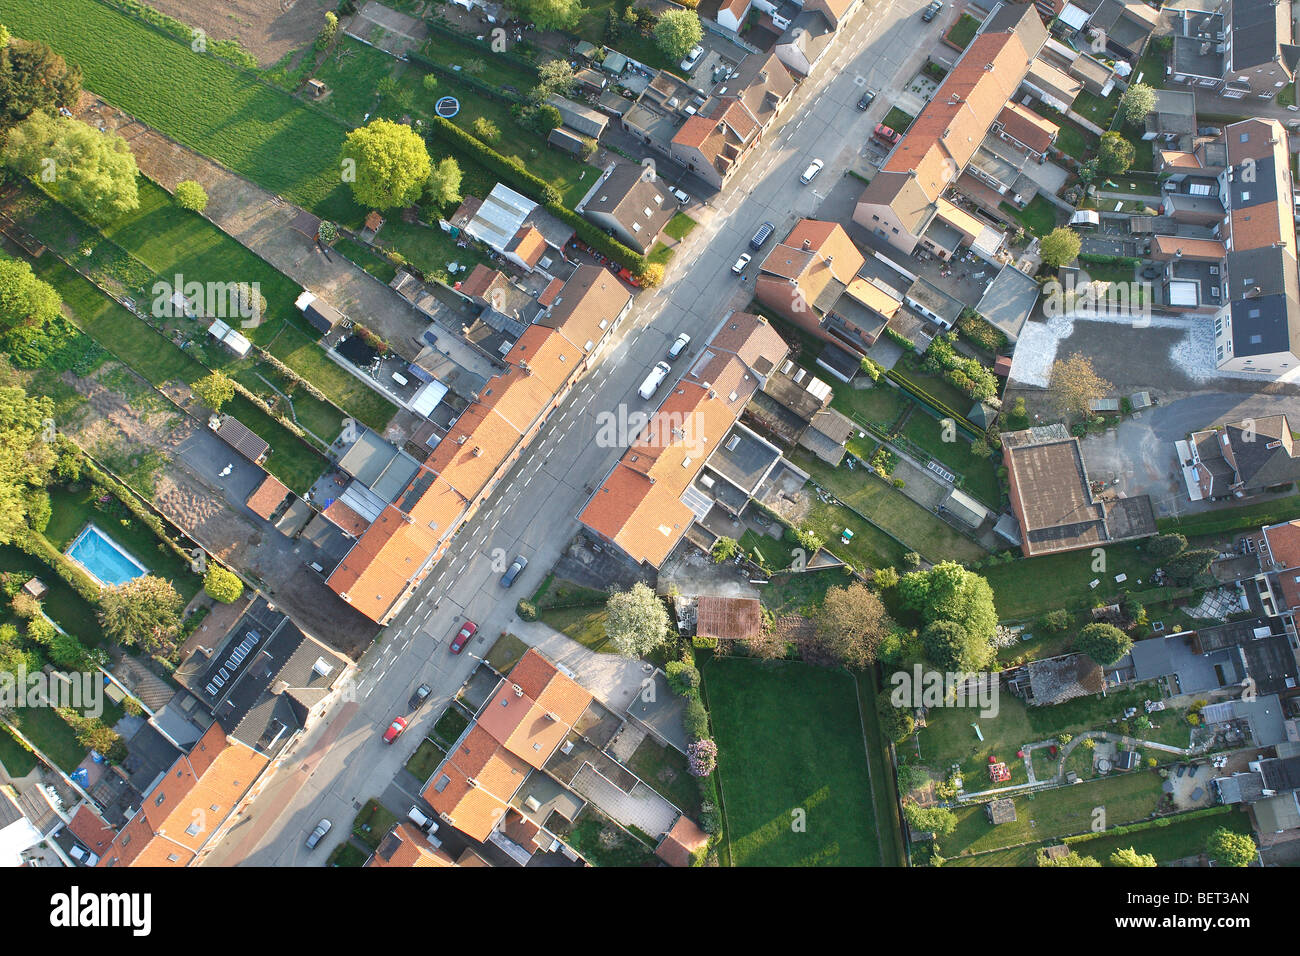 Ribbon development, urbanisation at the border of agricultural area from the air, Belgium - Stock Image